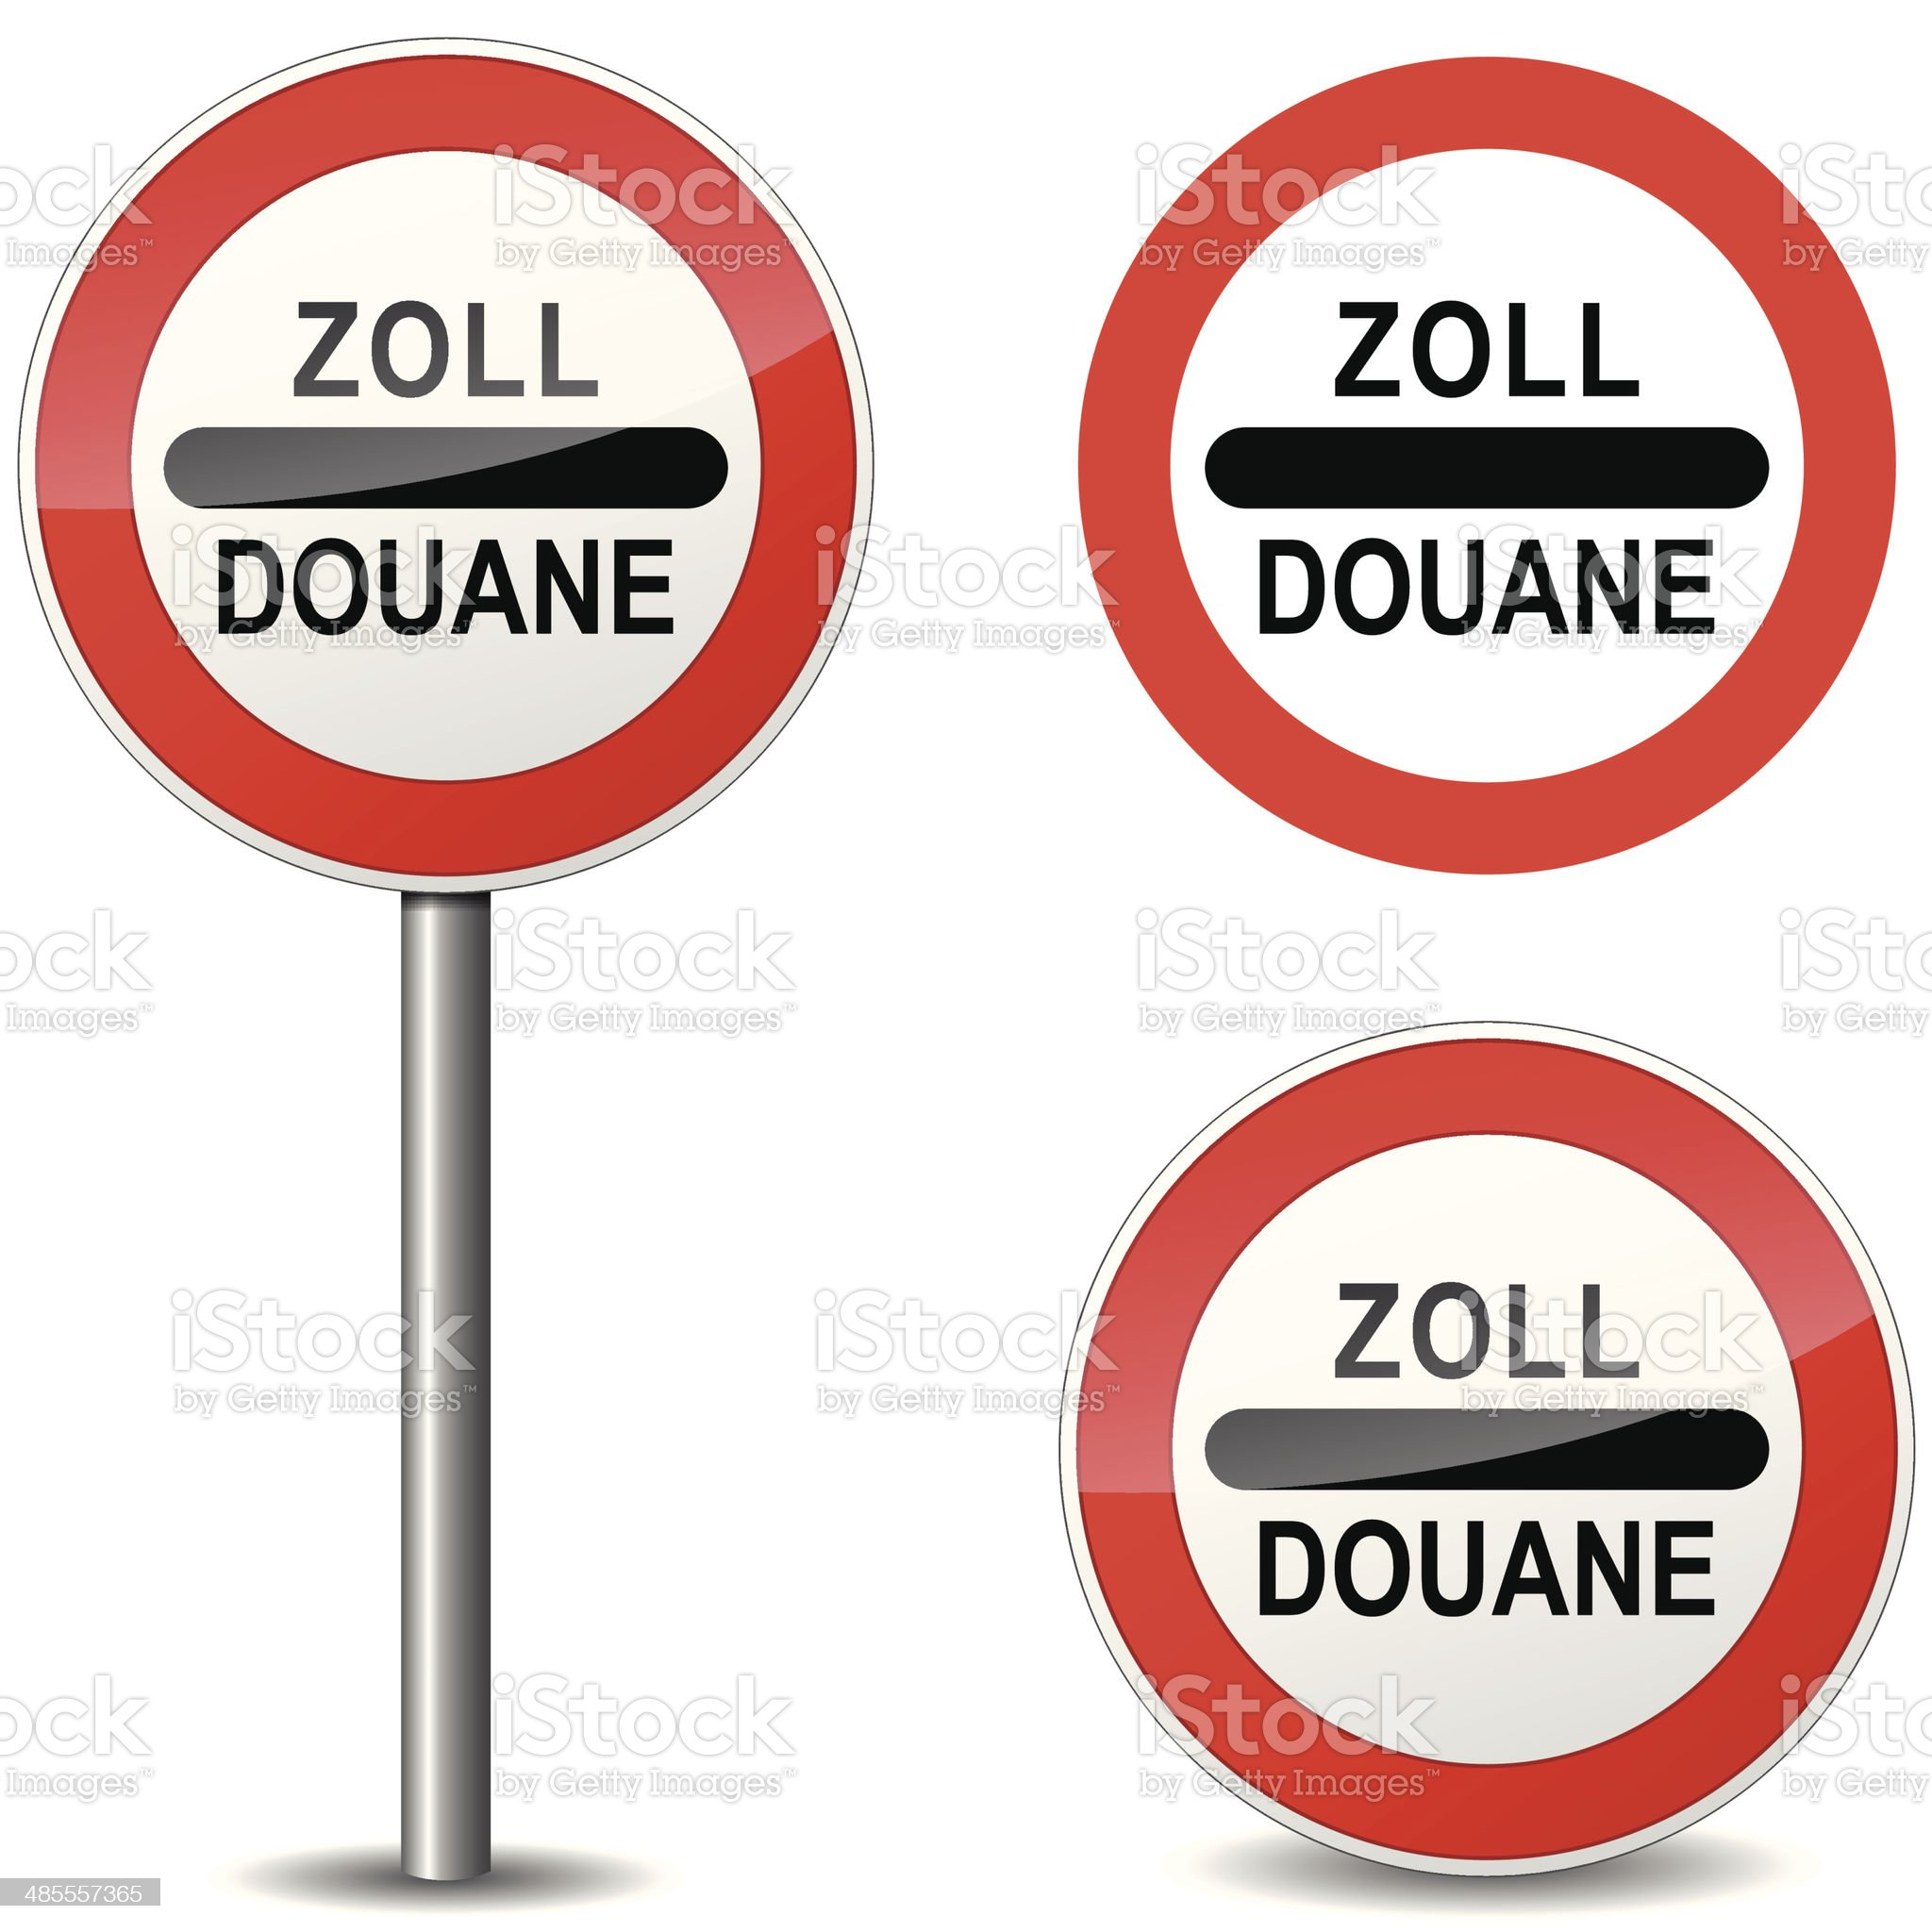 Vector douane sign royalty-free stock vector art